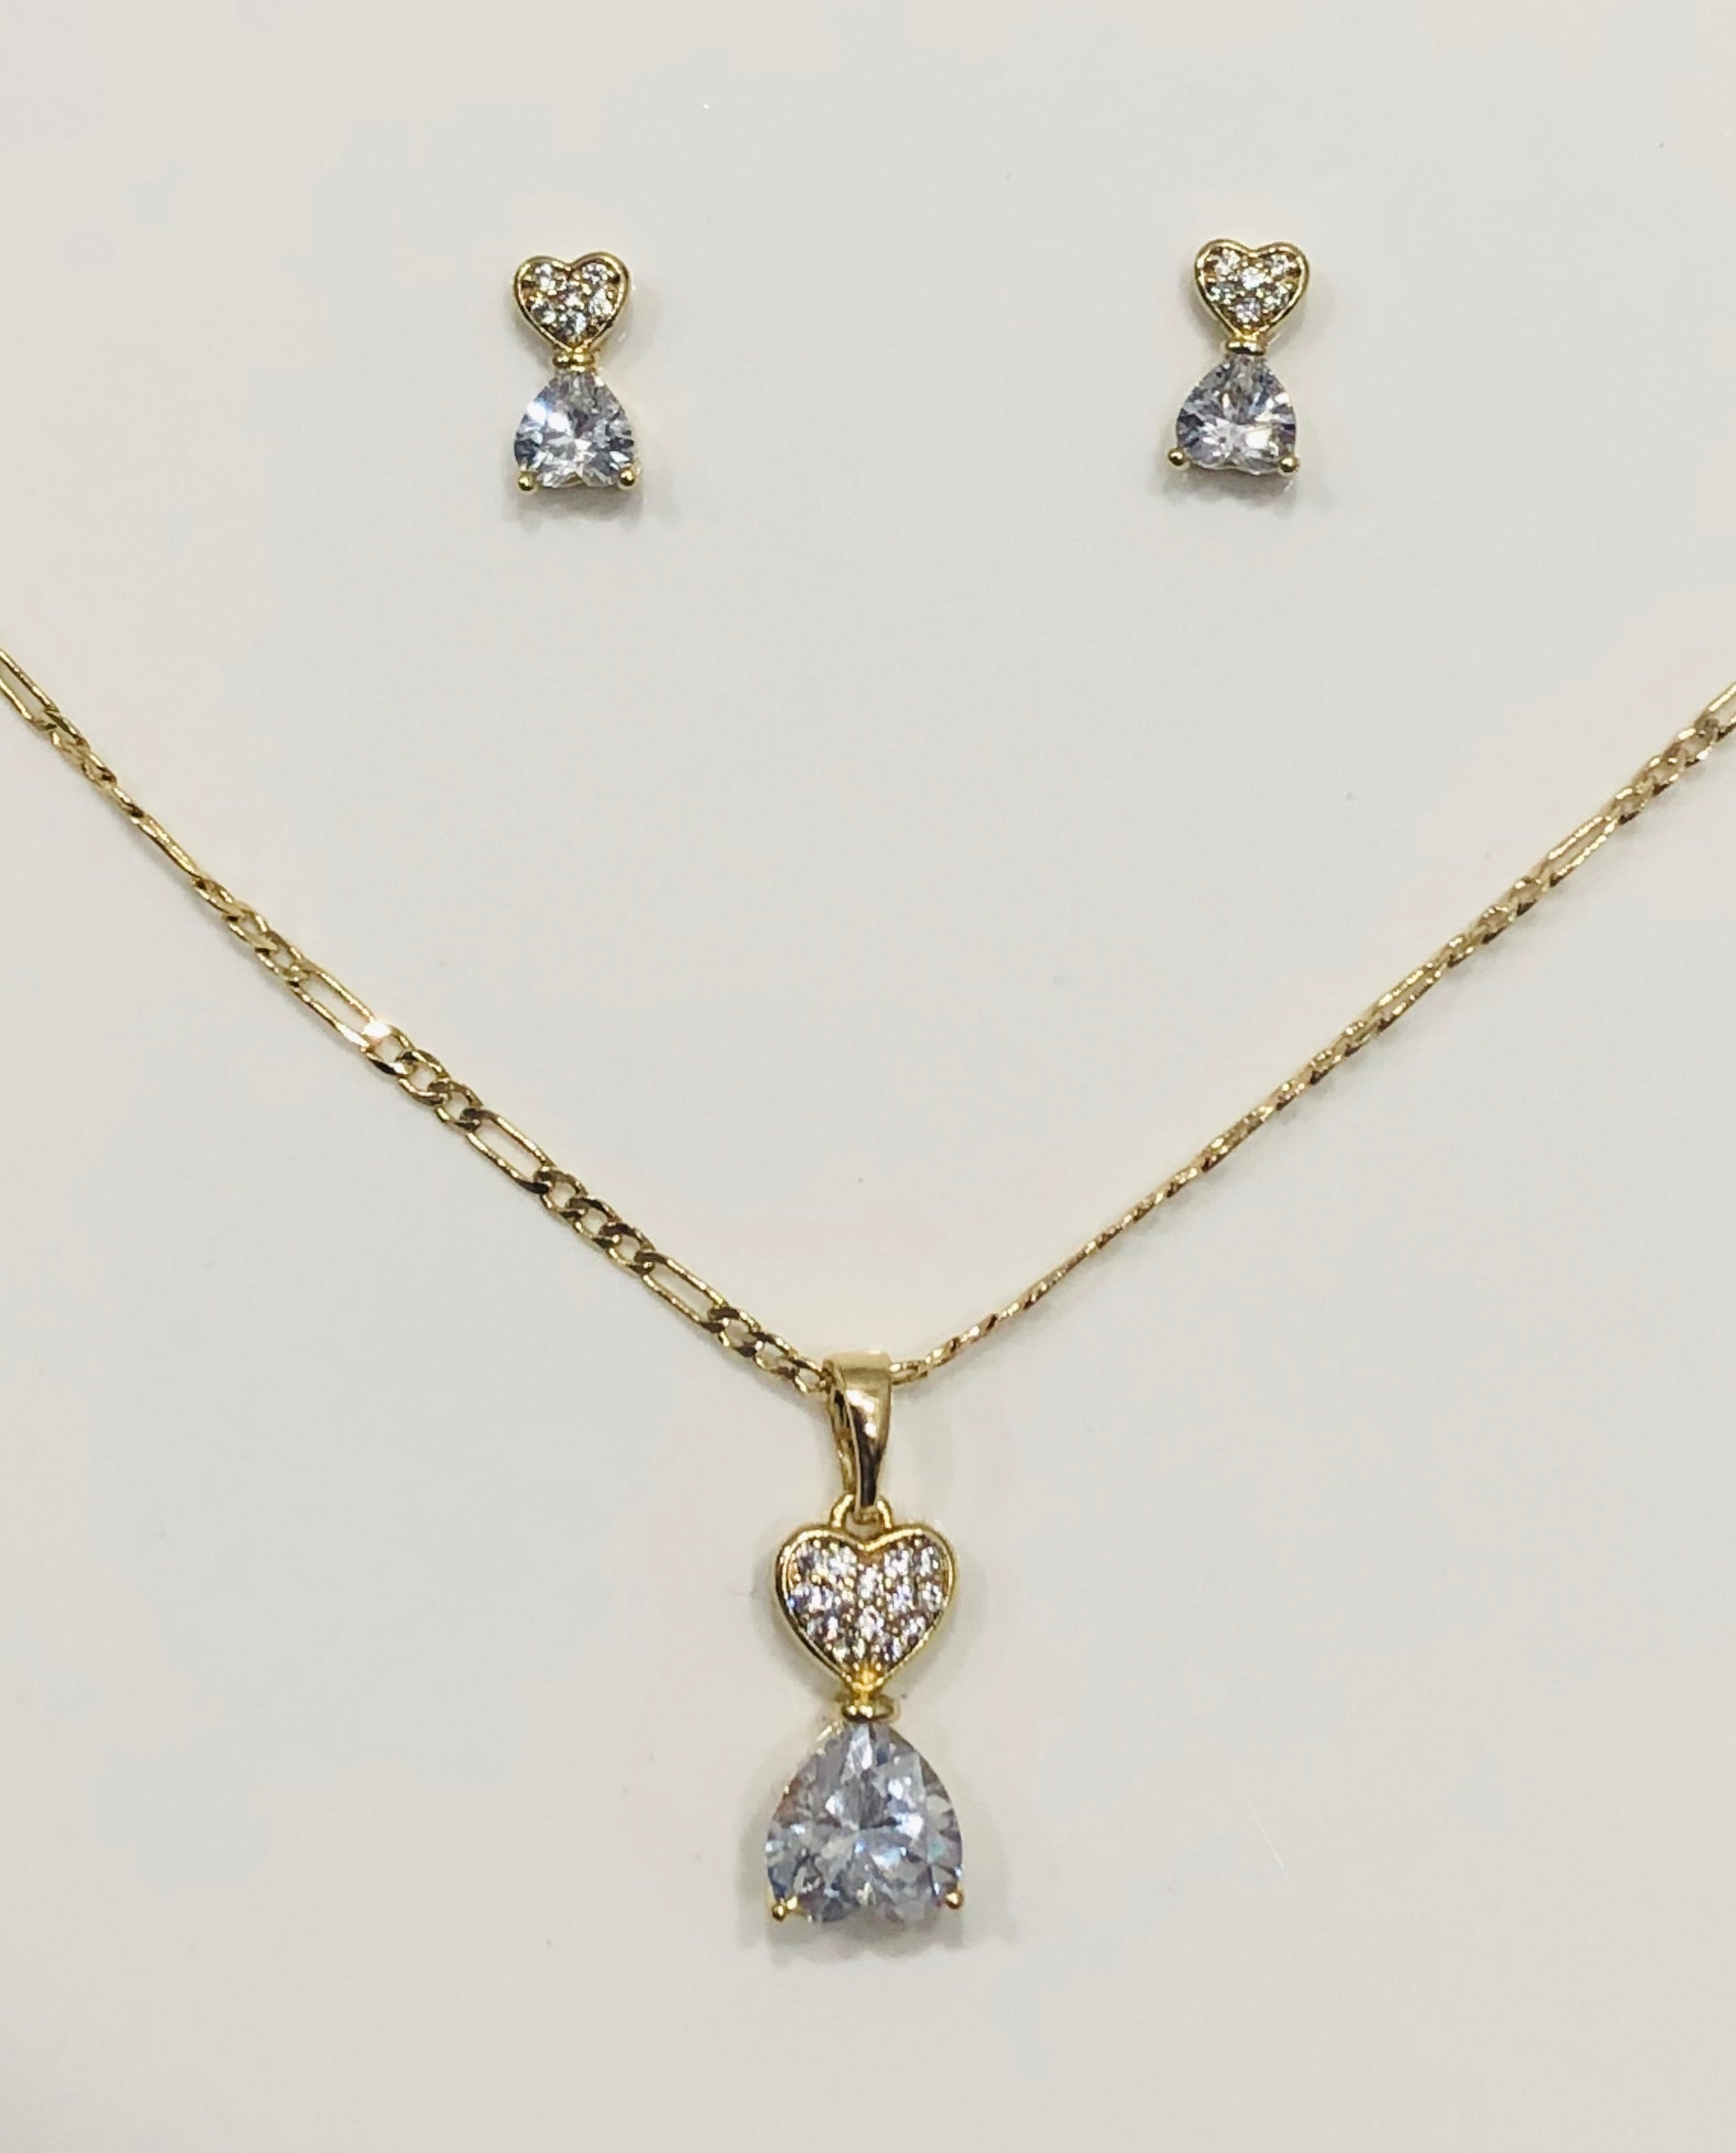 18ct Gold Plated Pendant & Earrings Set - 01